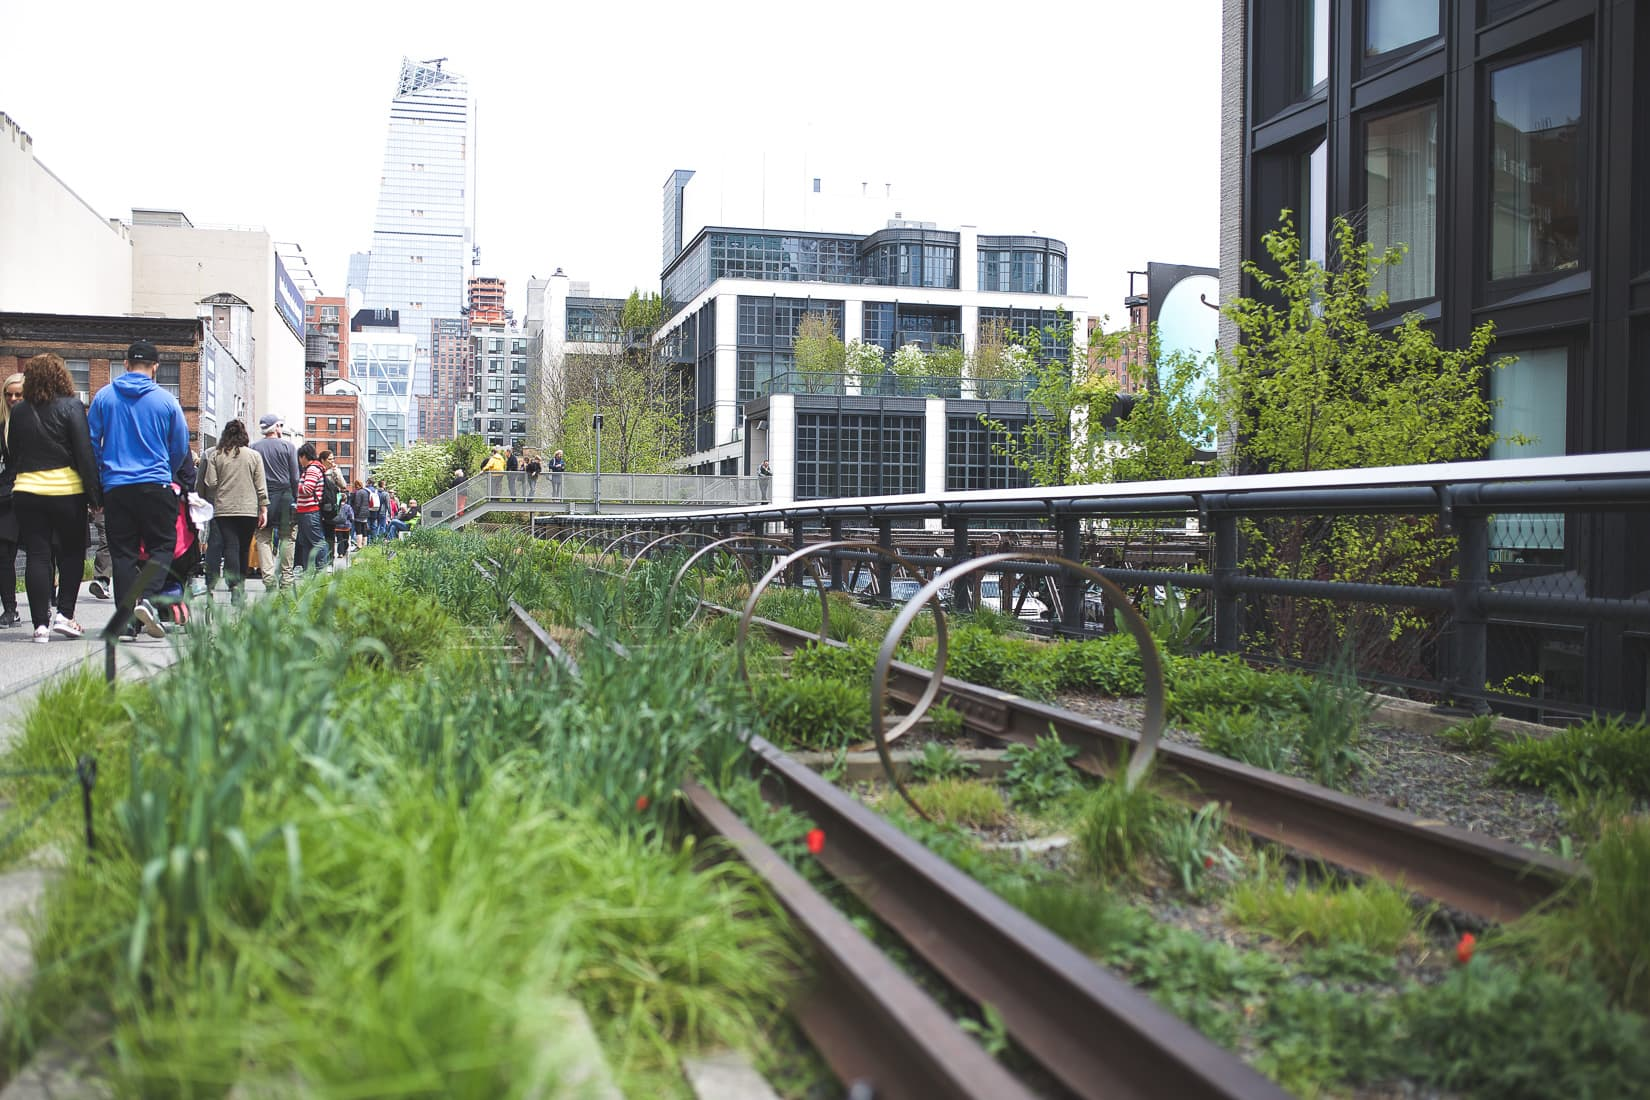 The Highline NYC